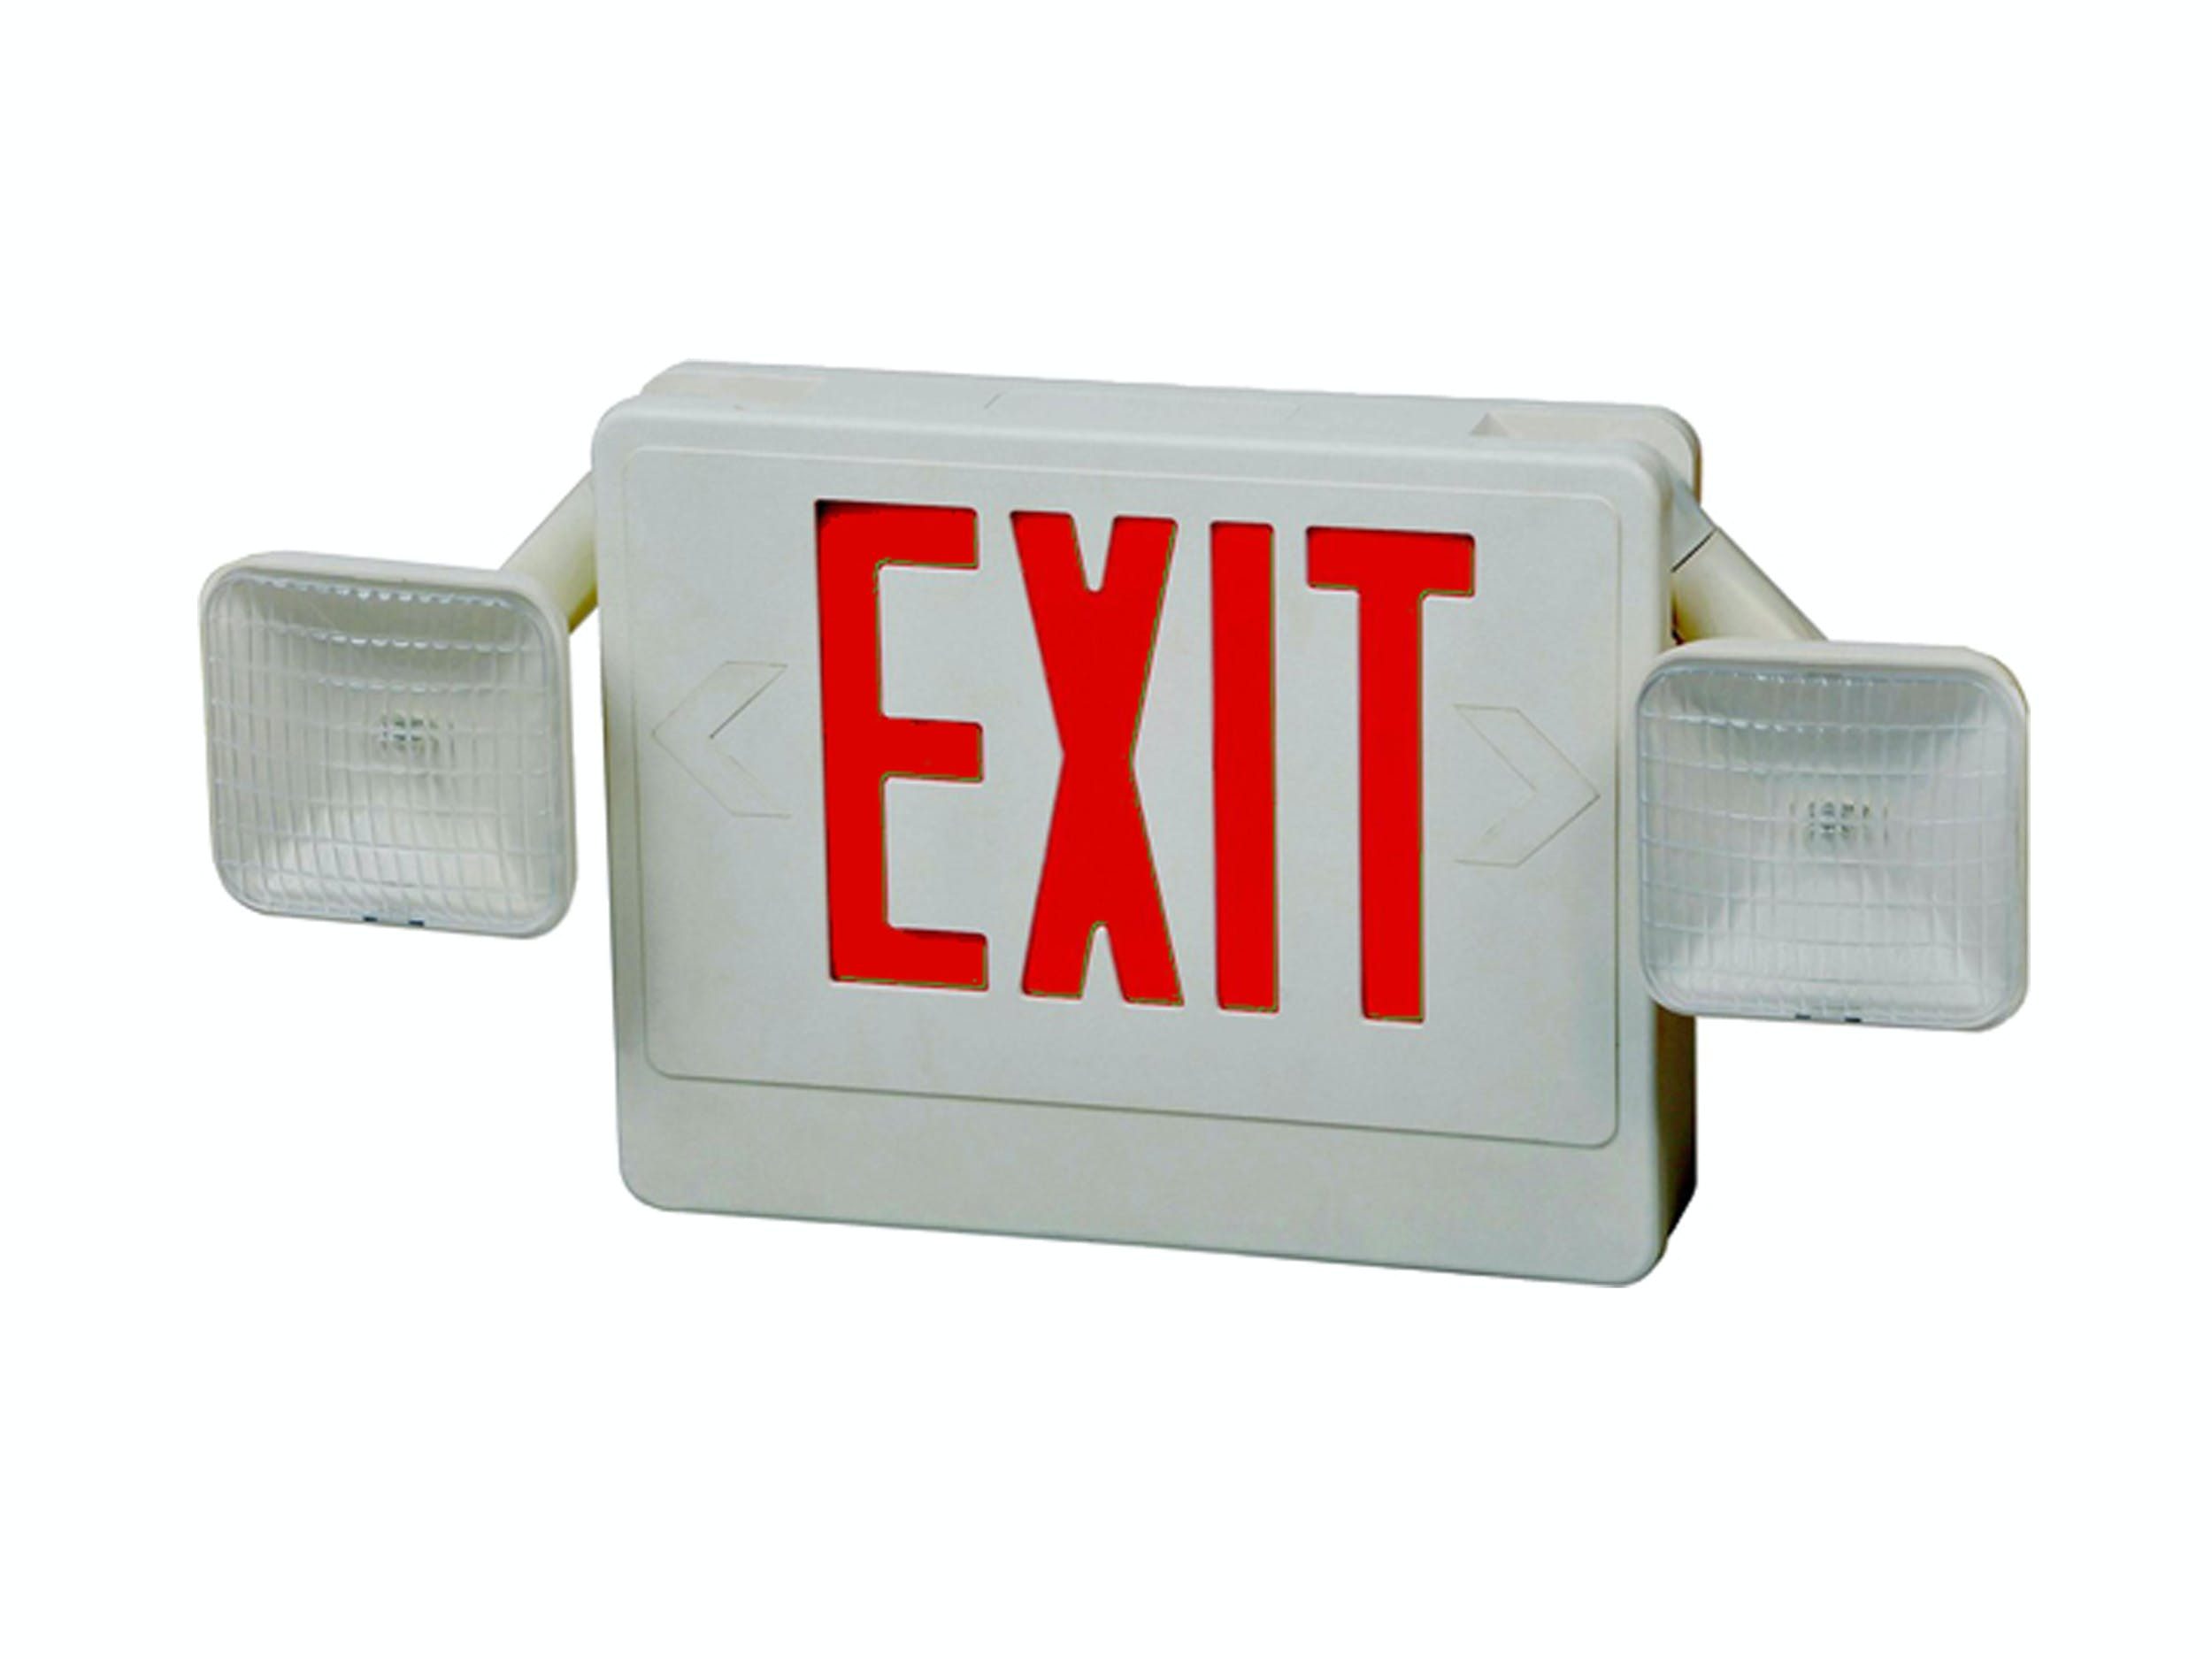 LED Combo Exit/Emergency Light With Red Letters - sold by RelightDepot.com